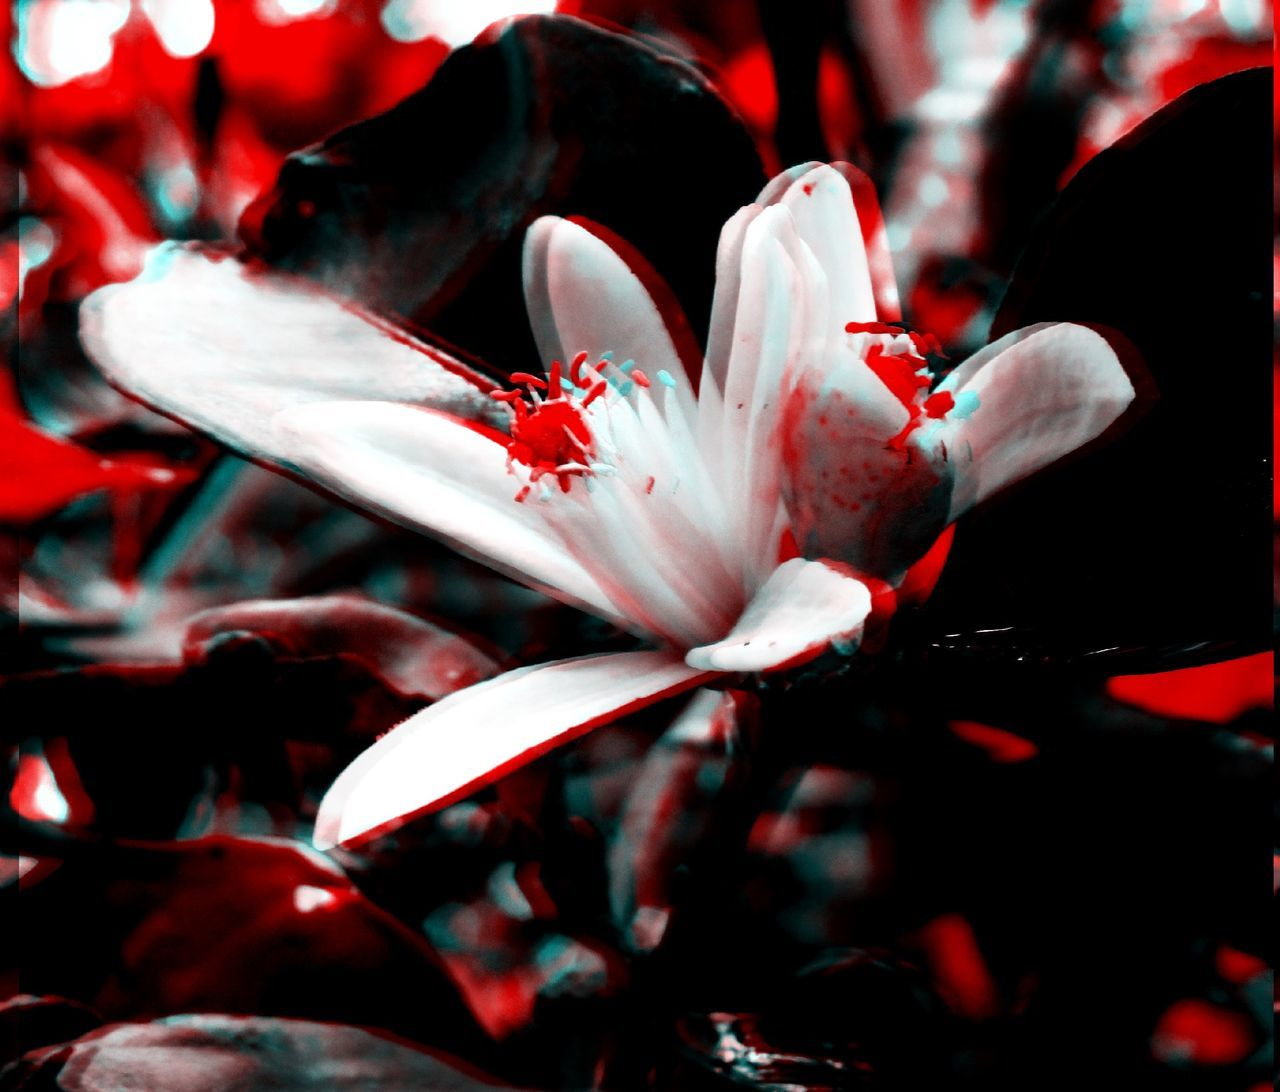 Life goes on!! (Collection) 3D Art 3d Collection 3D Composition 3D Effect 3D Photo 3Dart Beauty In Nature Black Black & White Black And White Blakck And White Blue Flower Flower Head Fragility Freshness Leaves Nature No People Outdoors Outdoos Petal Red Red White